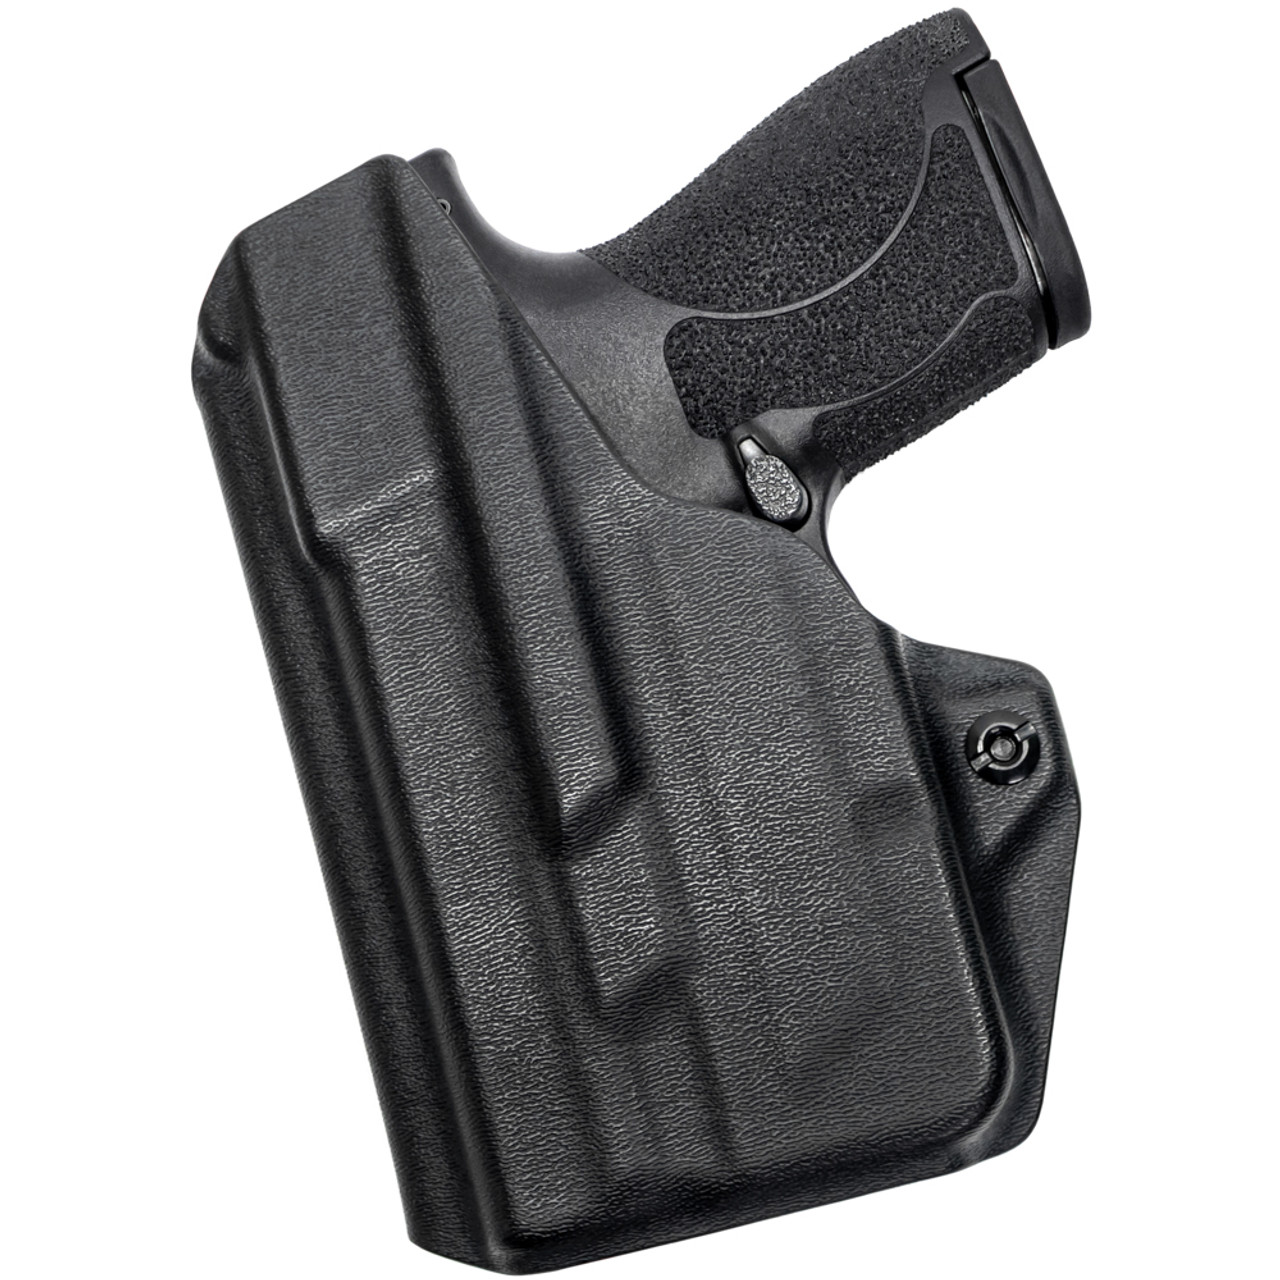 M&P Shield 9/40 Streamlight TLR-6 - Profile IWB Holster - Right Hand